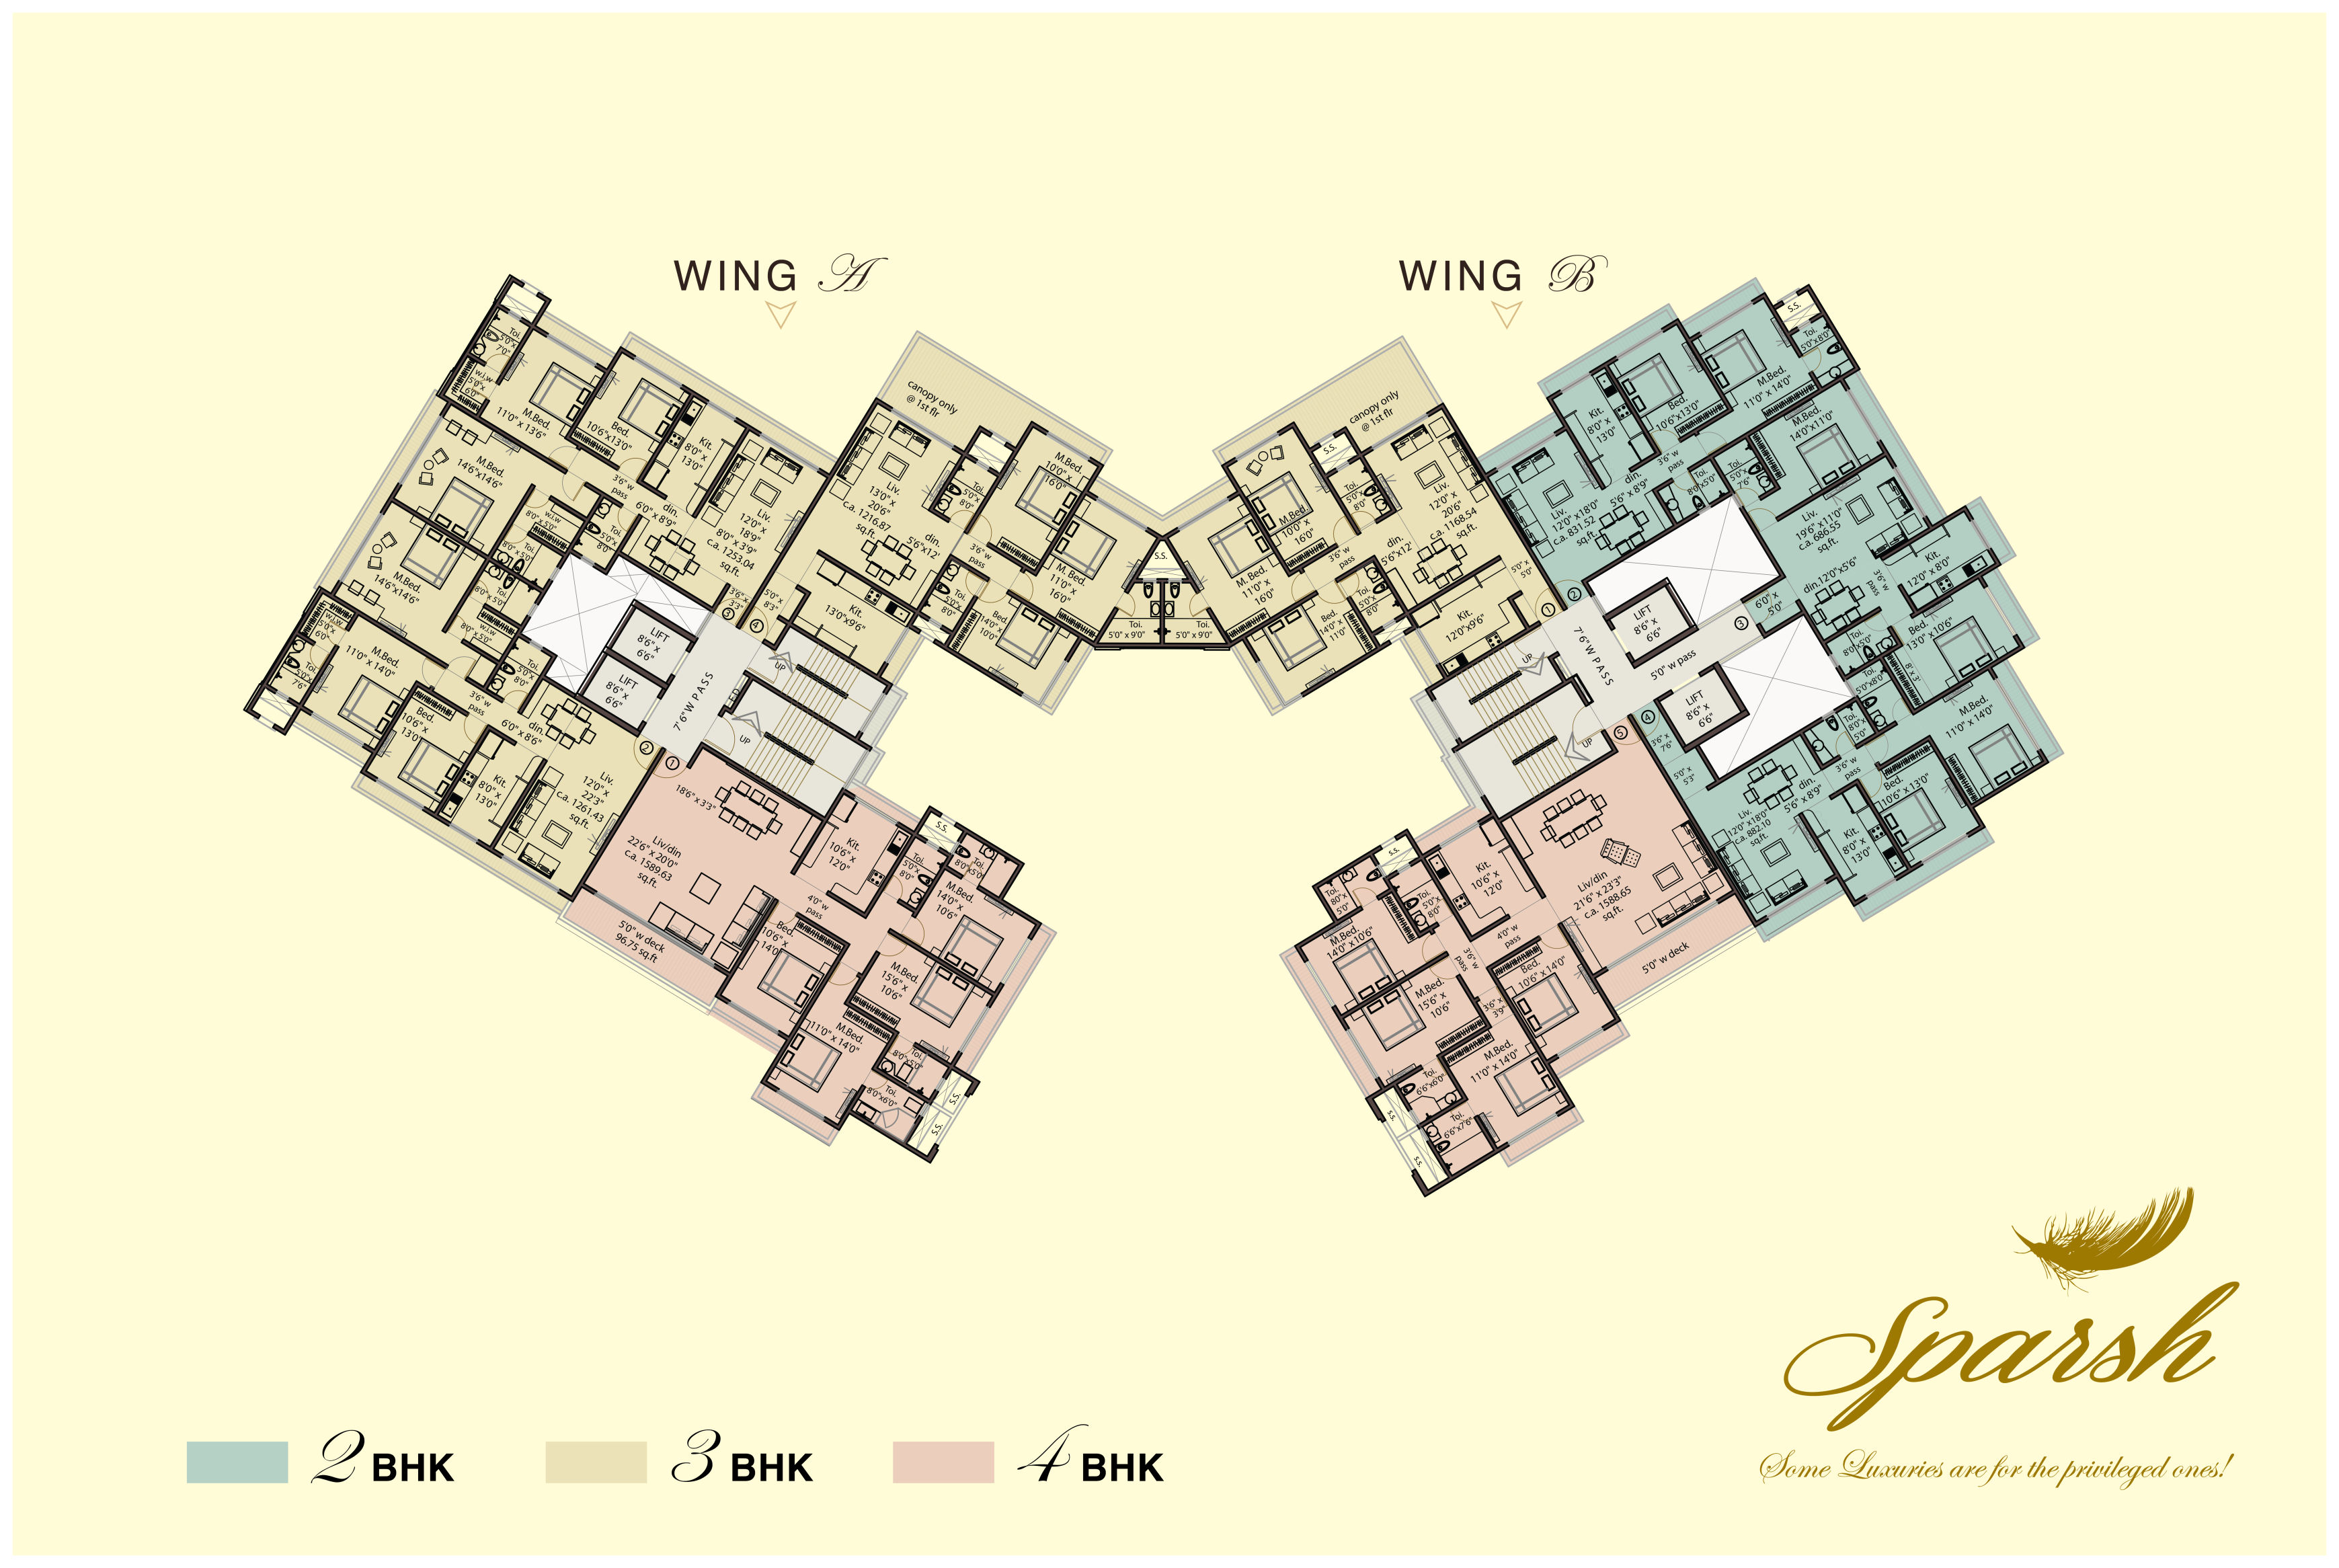 Sparsh floor plan